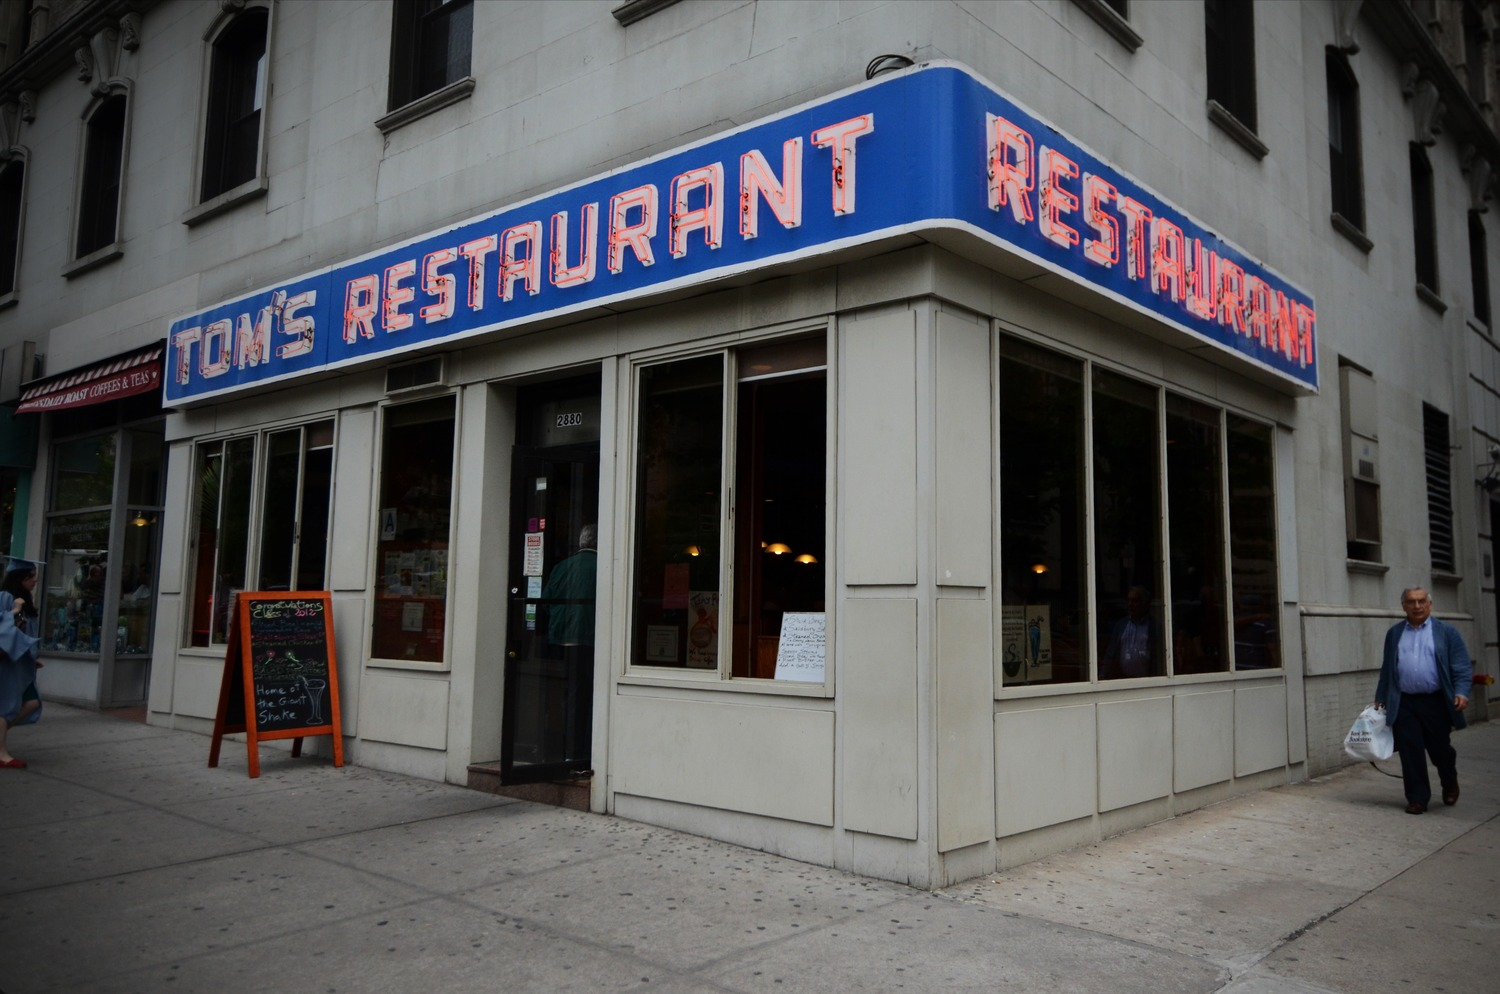 Tom's Restaurant | Seen in just about every episode of Seinfeld.